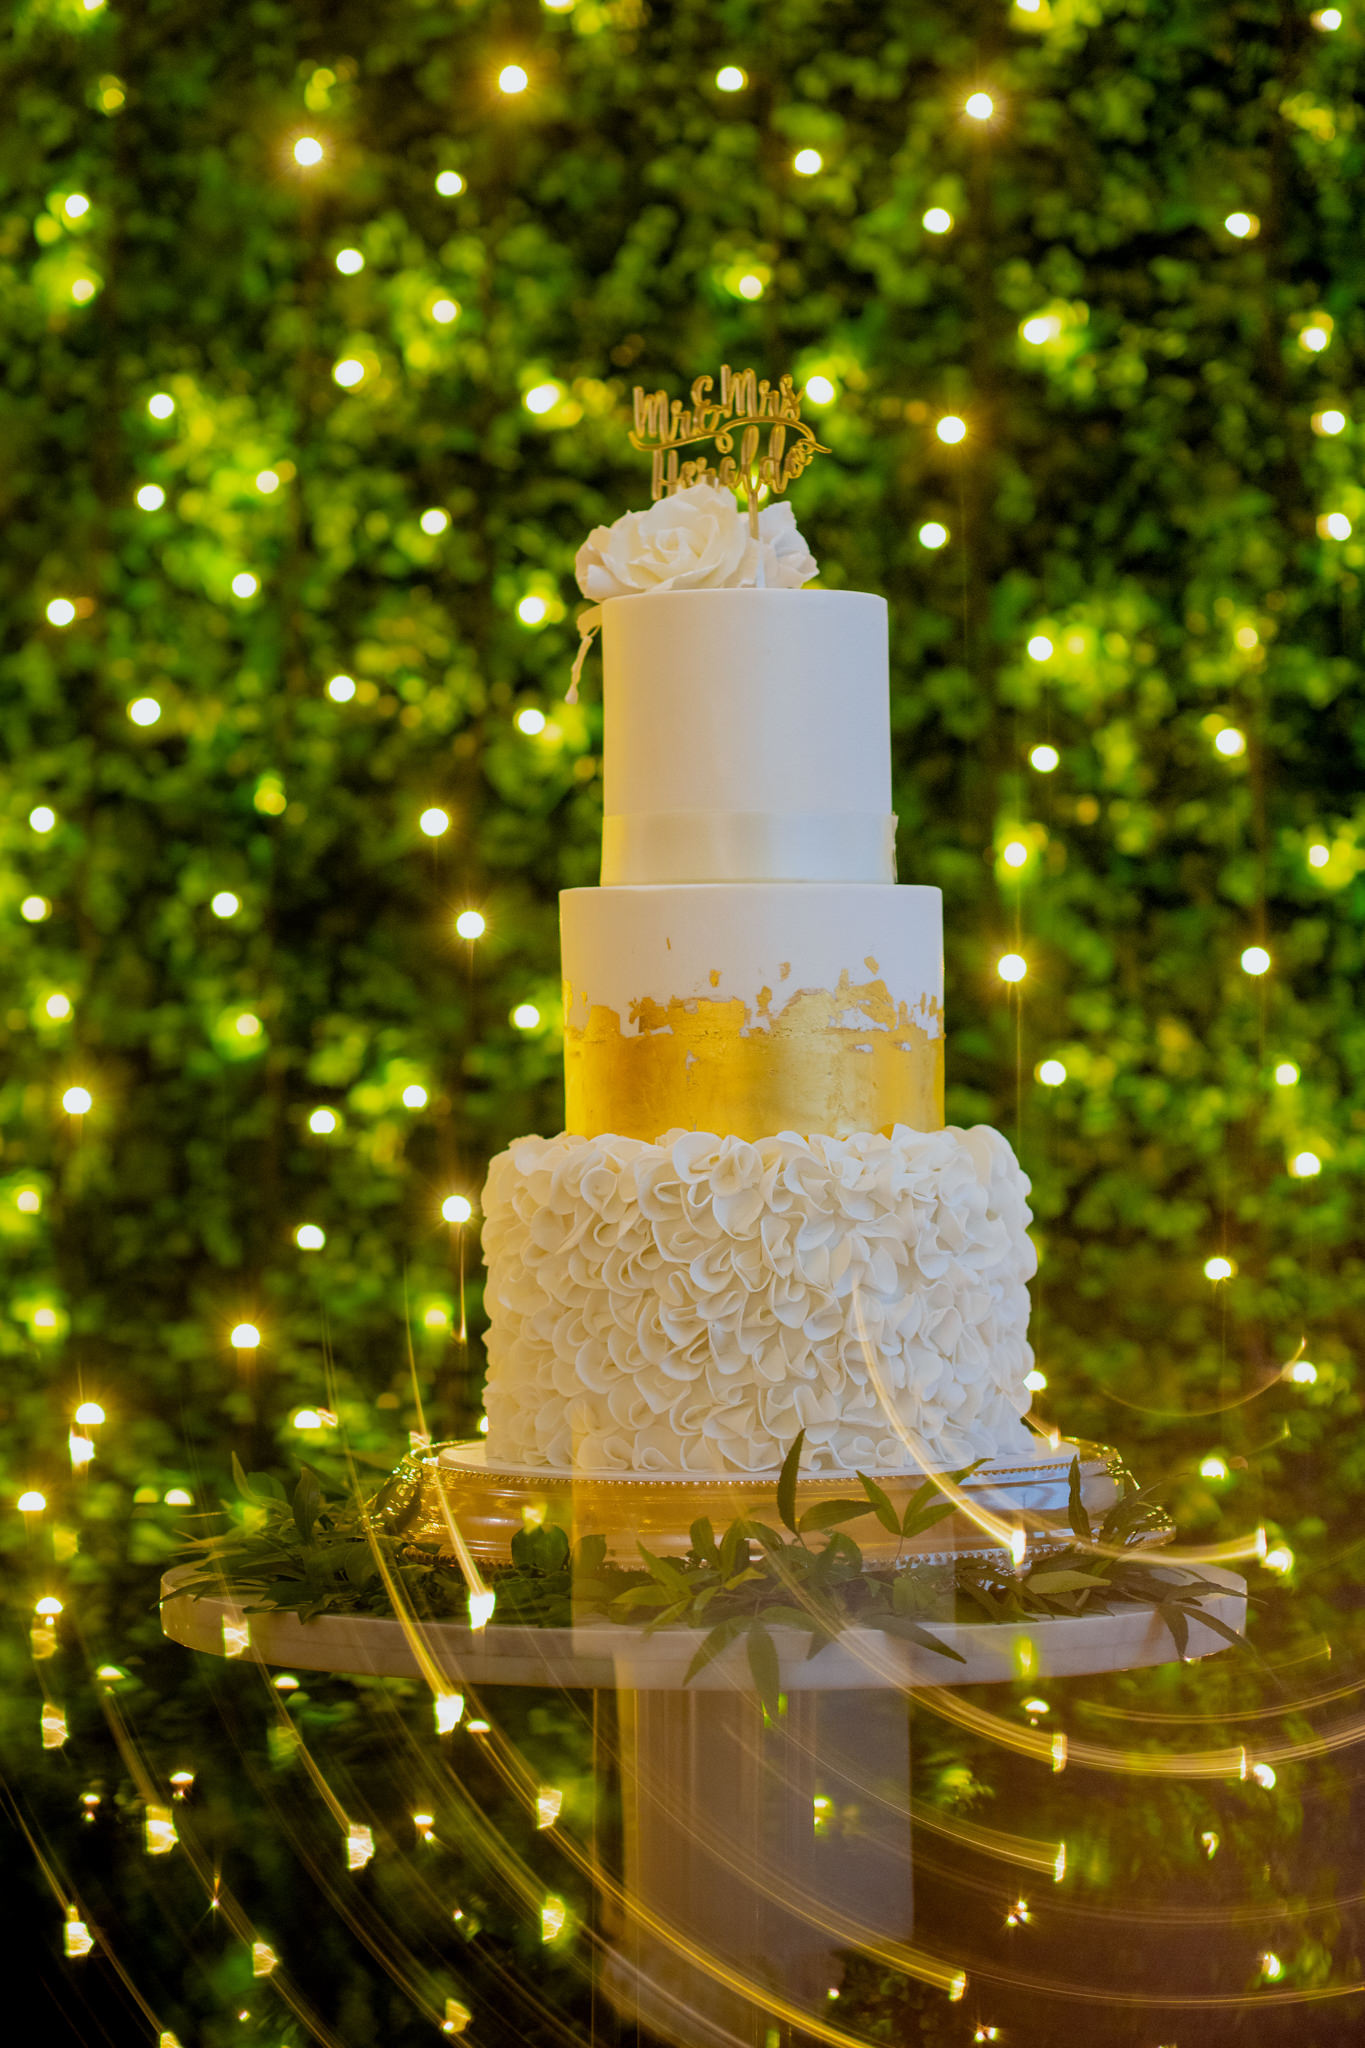 A three tiered white wedding cake in front of a green wall with fairy lights